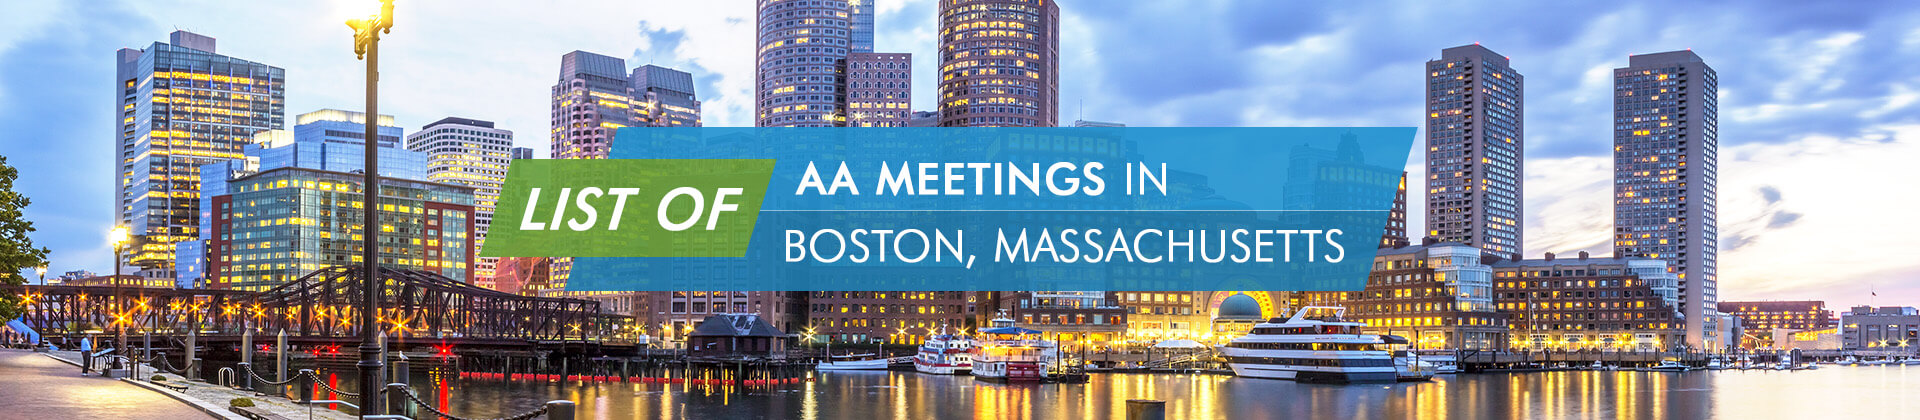 AA Meetings Boston Massachusetts